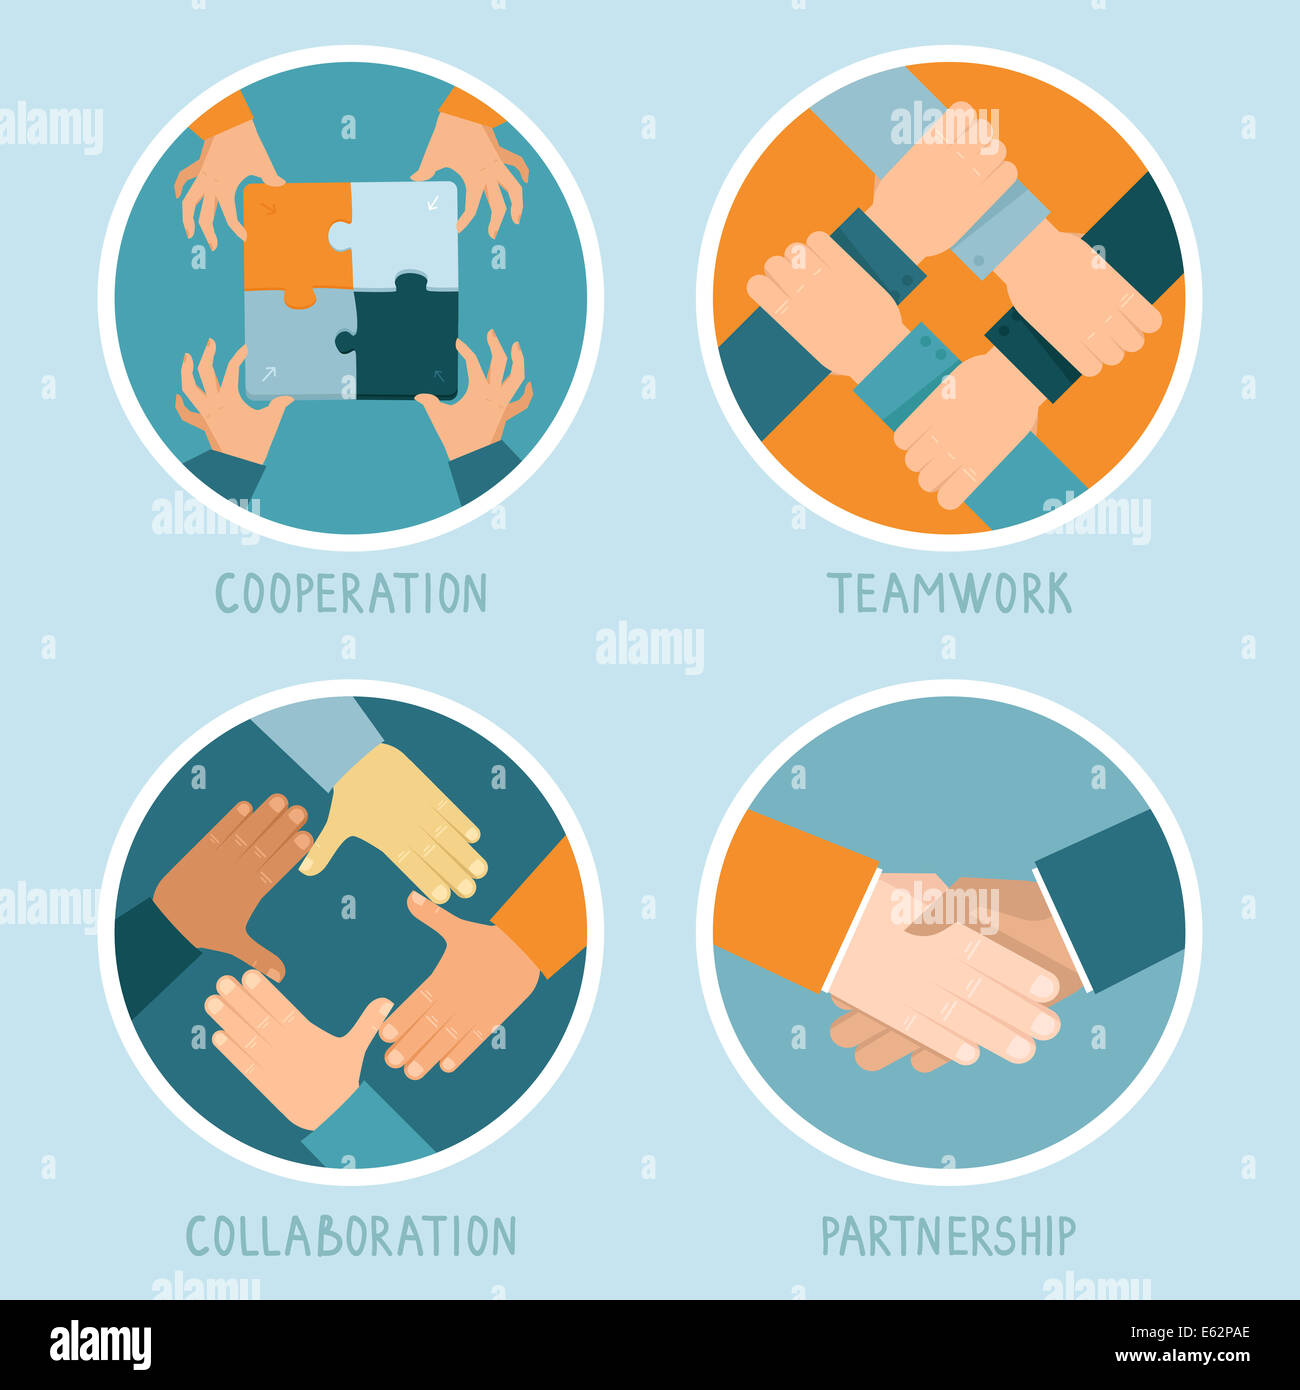 Teamwork and cooperation concept in flat style - partnership and collaboration icons - businessmen hands - Stock Image